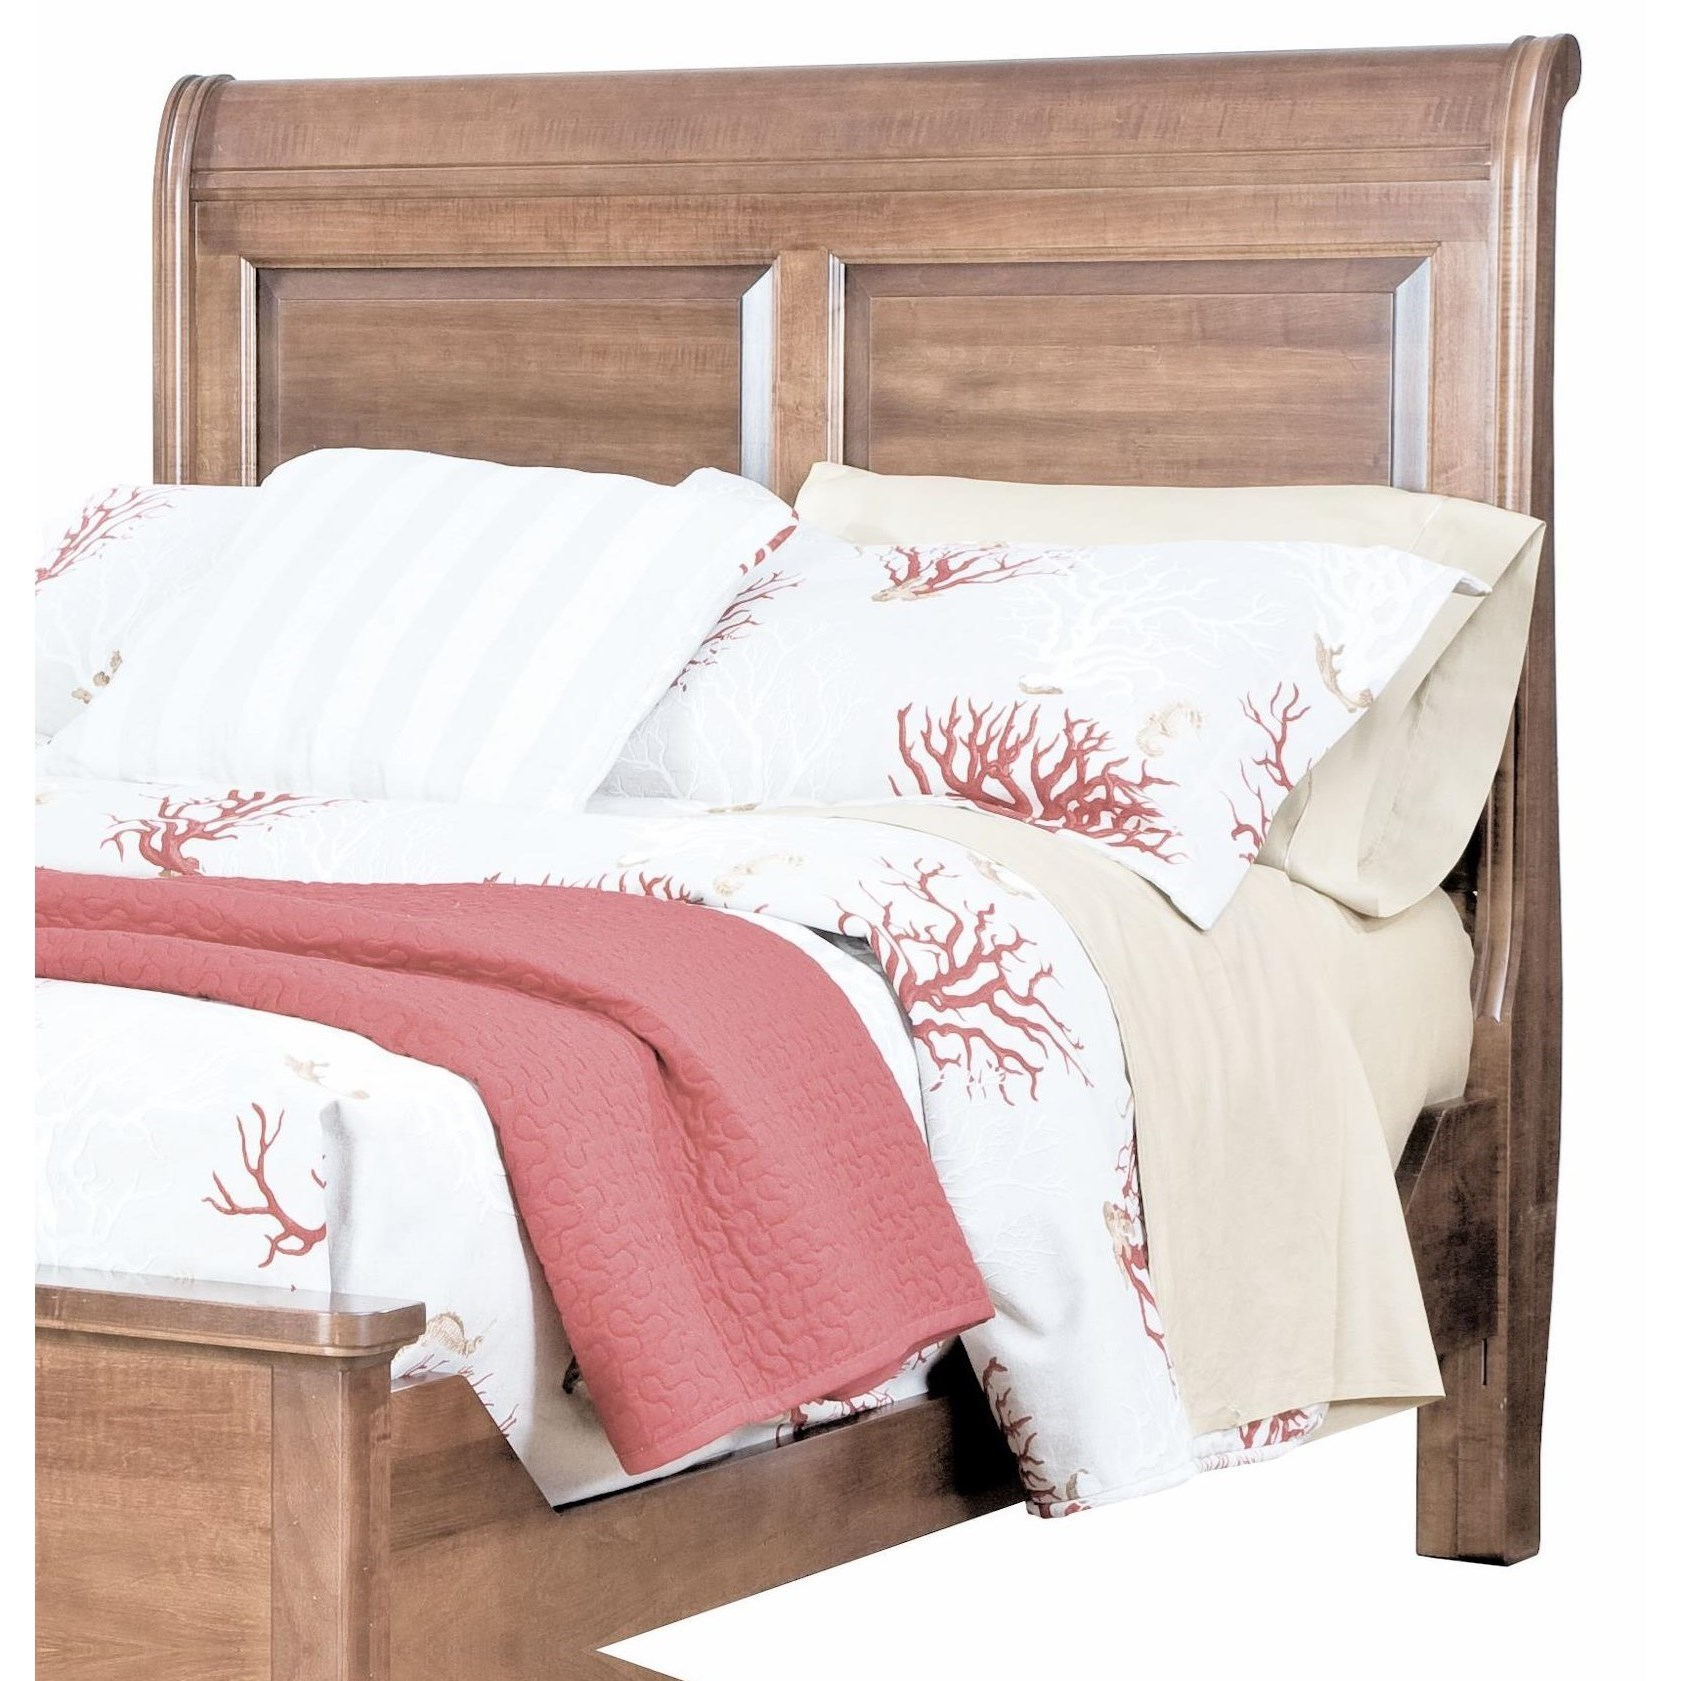 Beds Twin Sleigh Headboard by perfectbalance by Durham Furniture at Stoney Creek Furniture